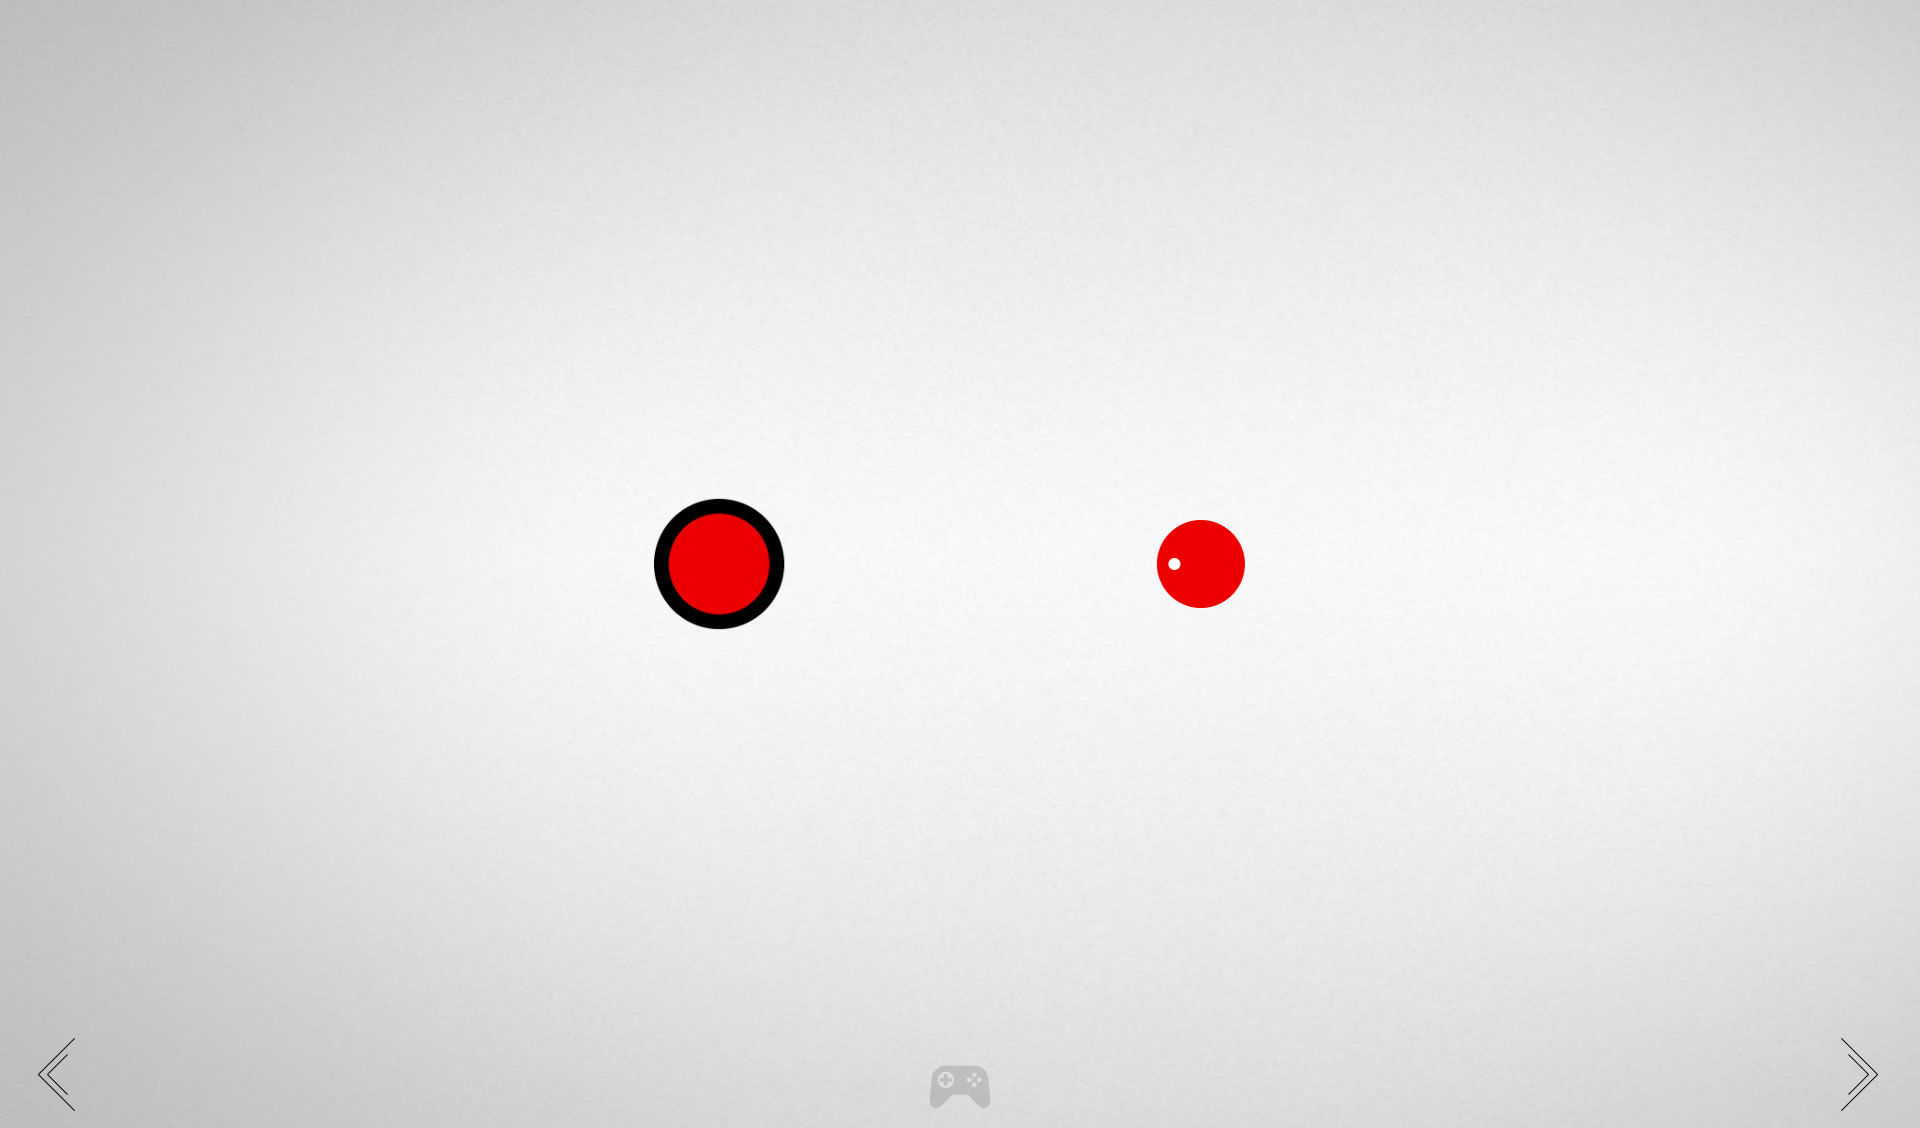 blek screenshots for android mobygames